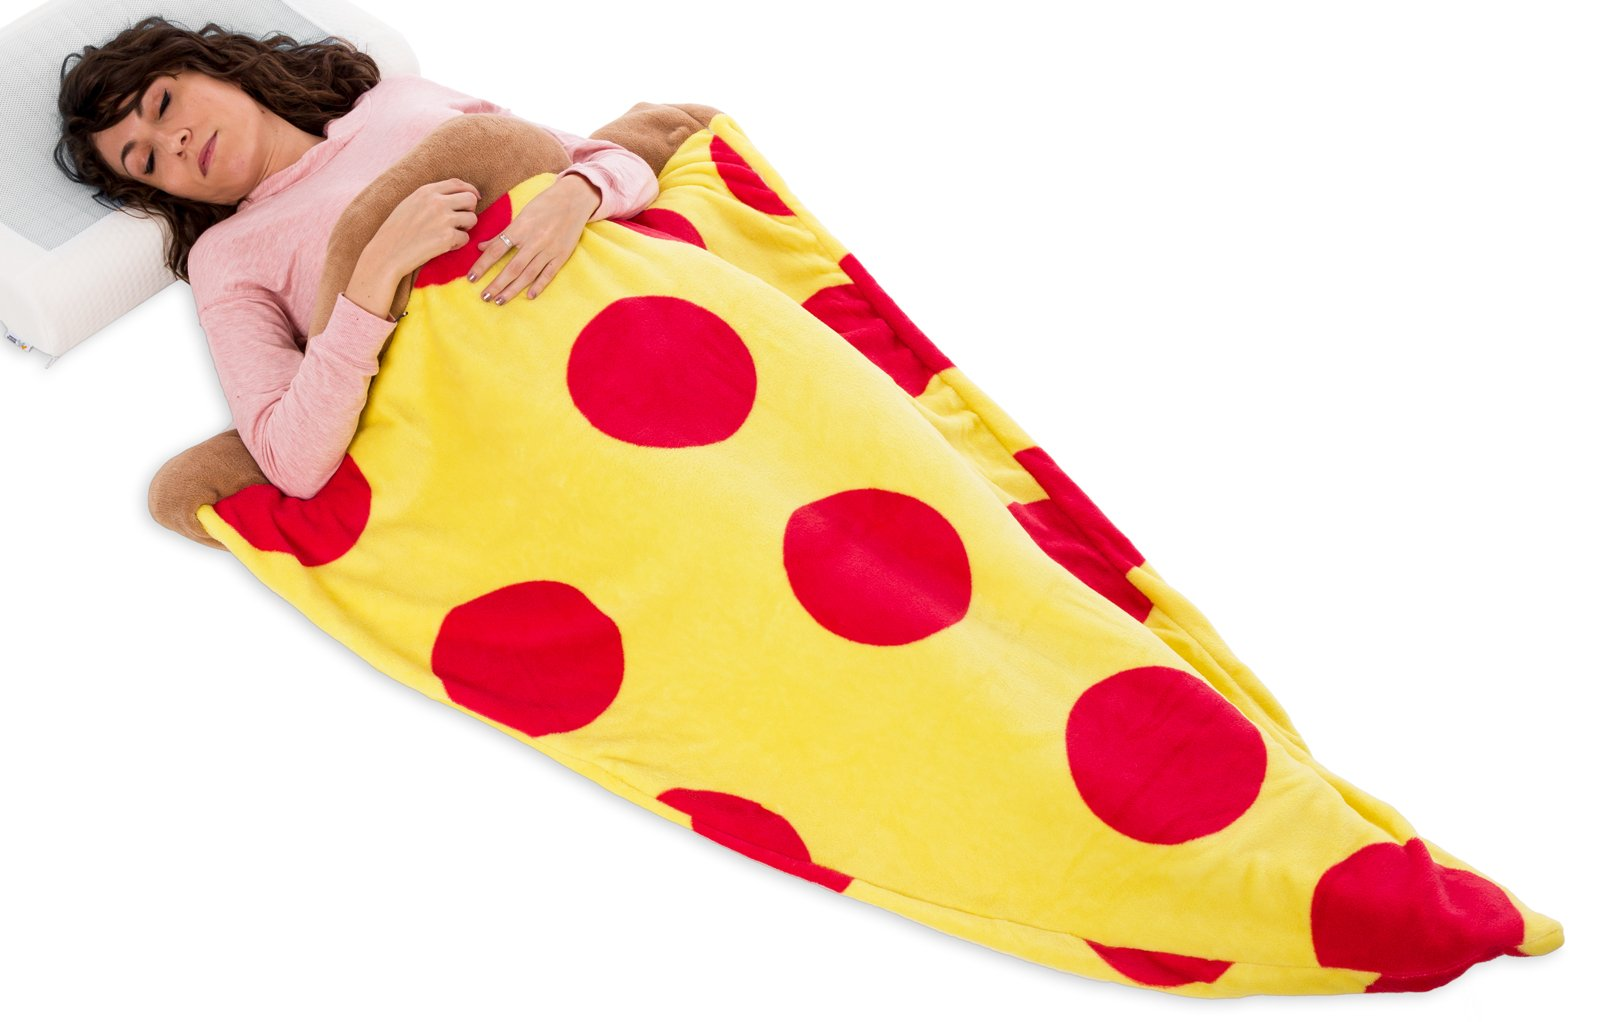 Silver Lilly Pizza Sleeping Bag - Plush Fleece Giant Pizza Slice Blanket for Kids and Adults by (Adult) by Silver Lilly (Image #4)